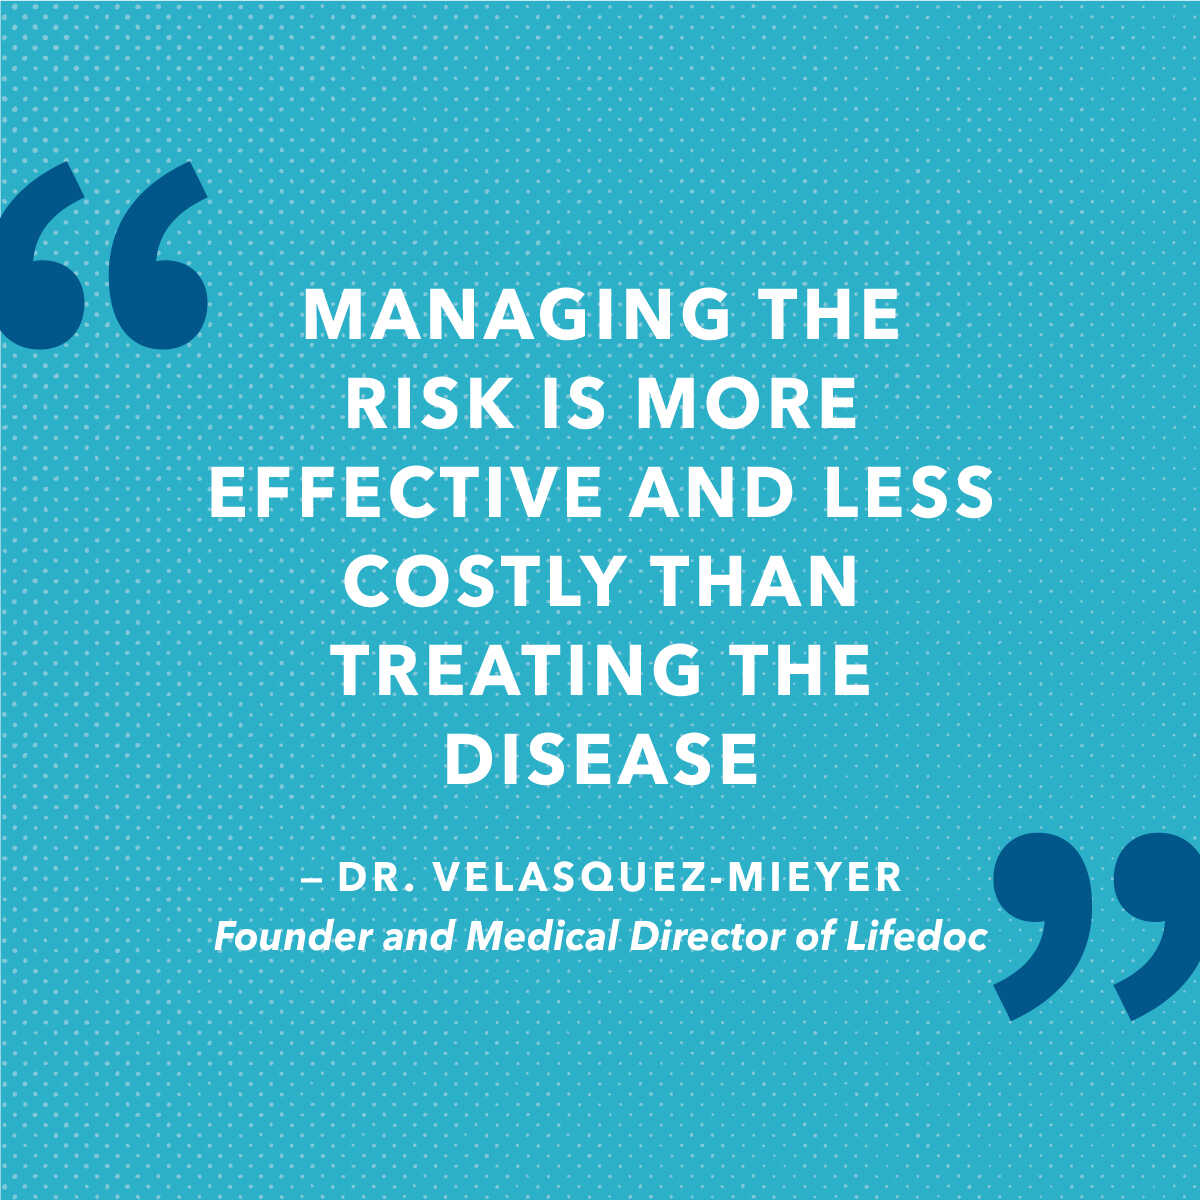 Managing the risk is more effective and less costly than treating the disease.